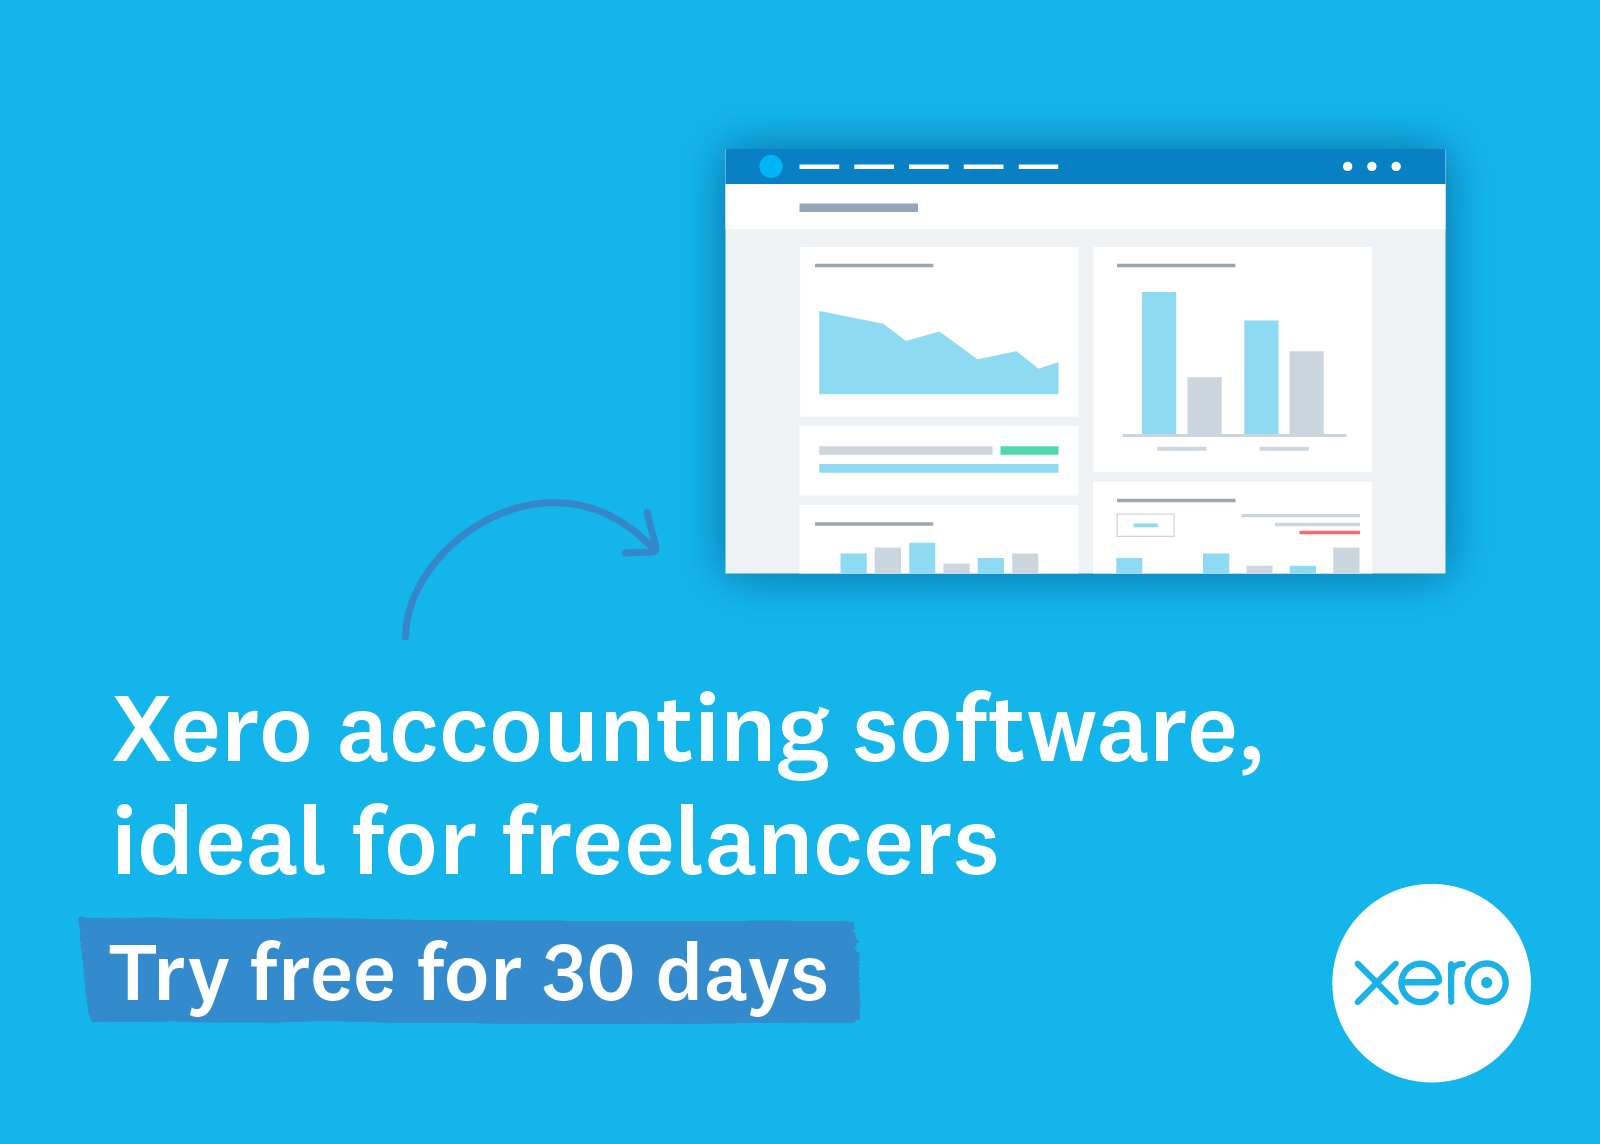 Xero accounting software, ideal for freelancers. Try free for 30 days